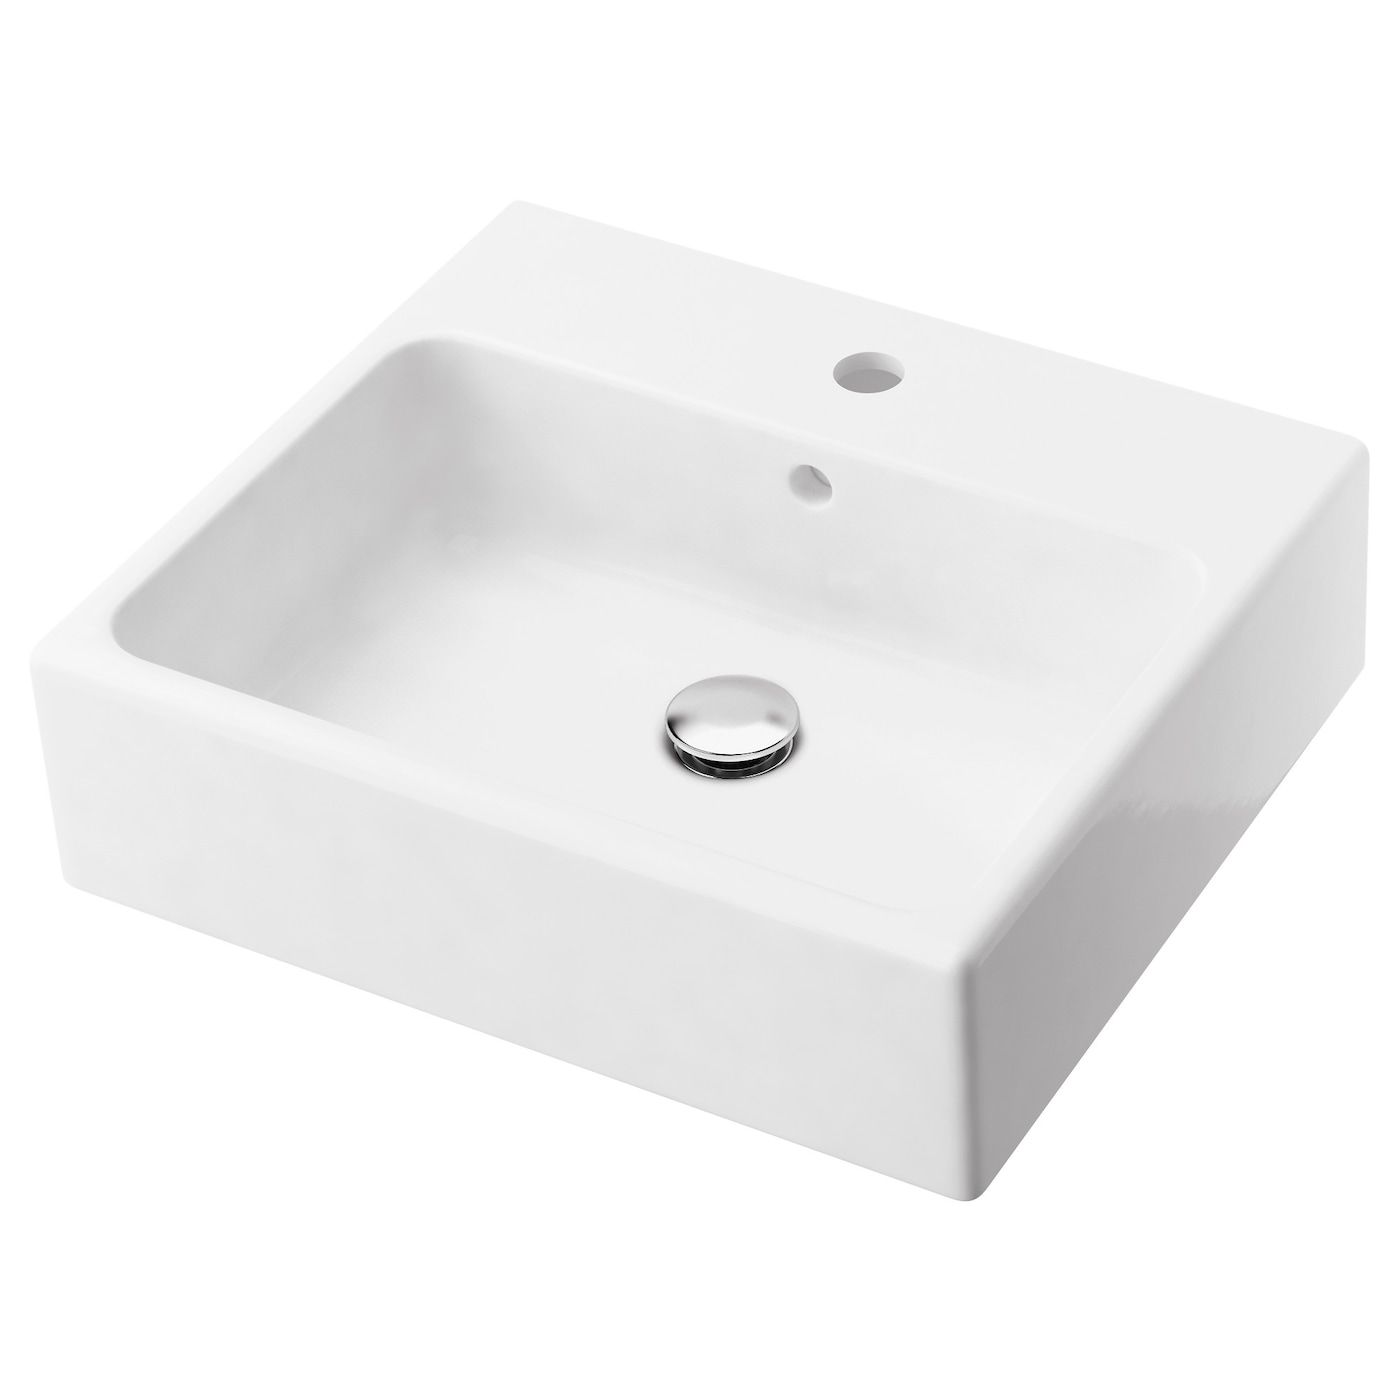 Bathroom Sinks Wash Basins Ikea